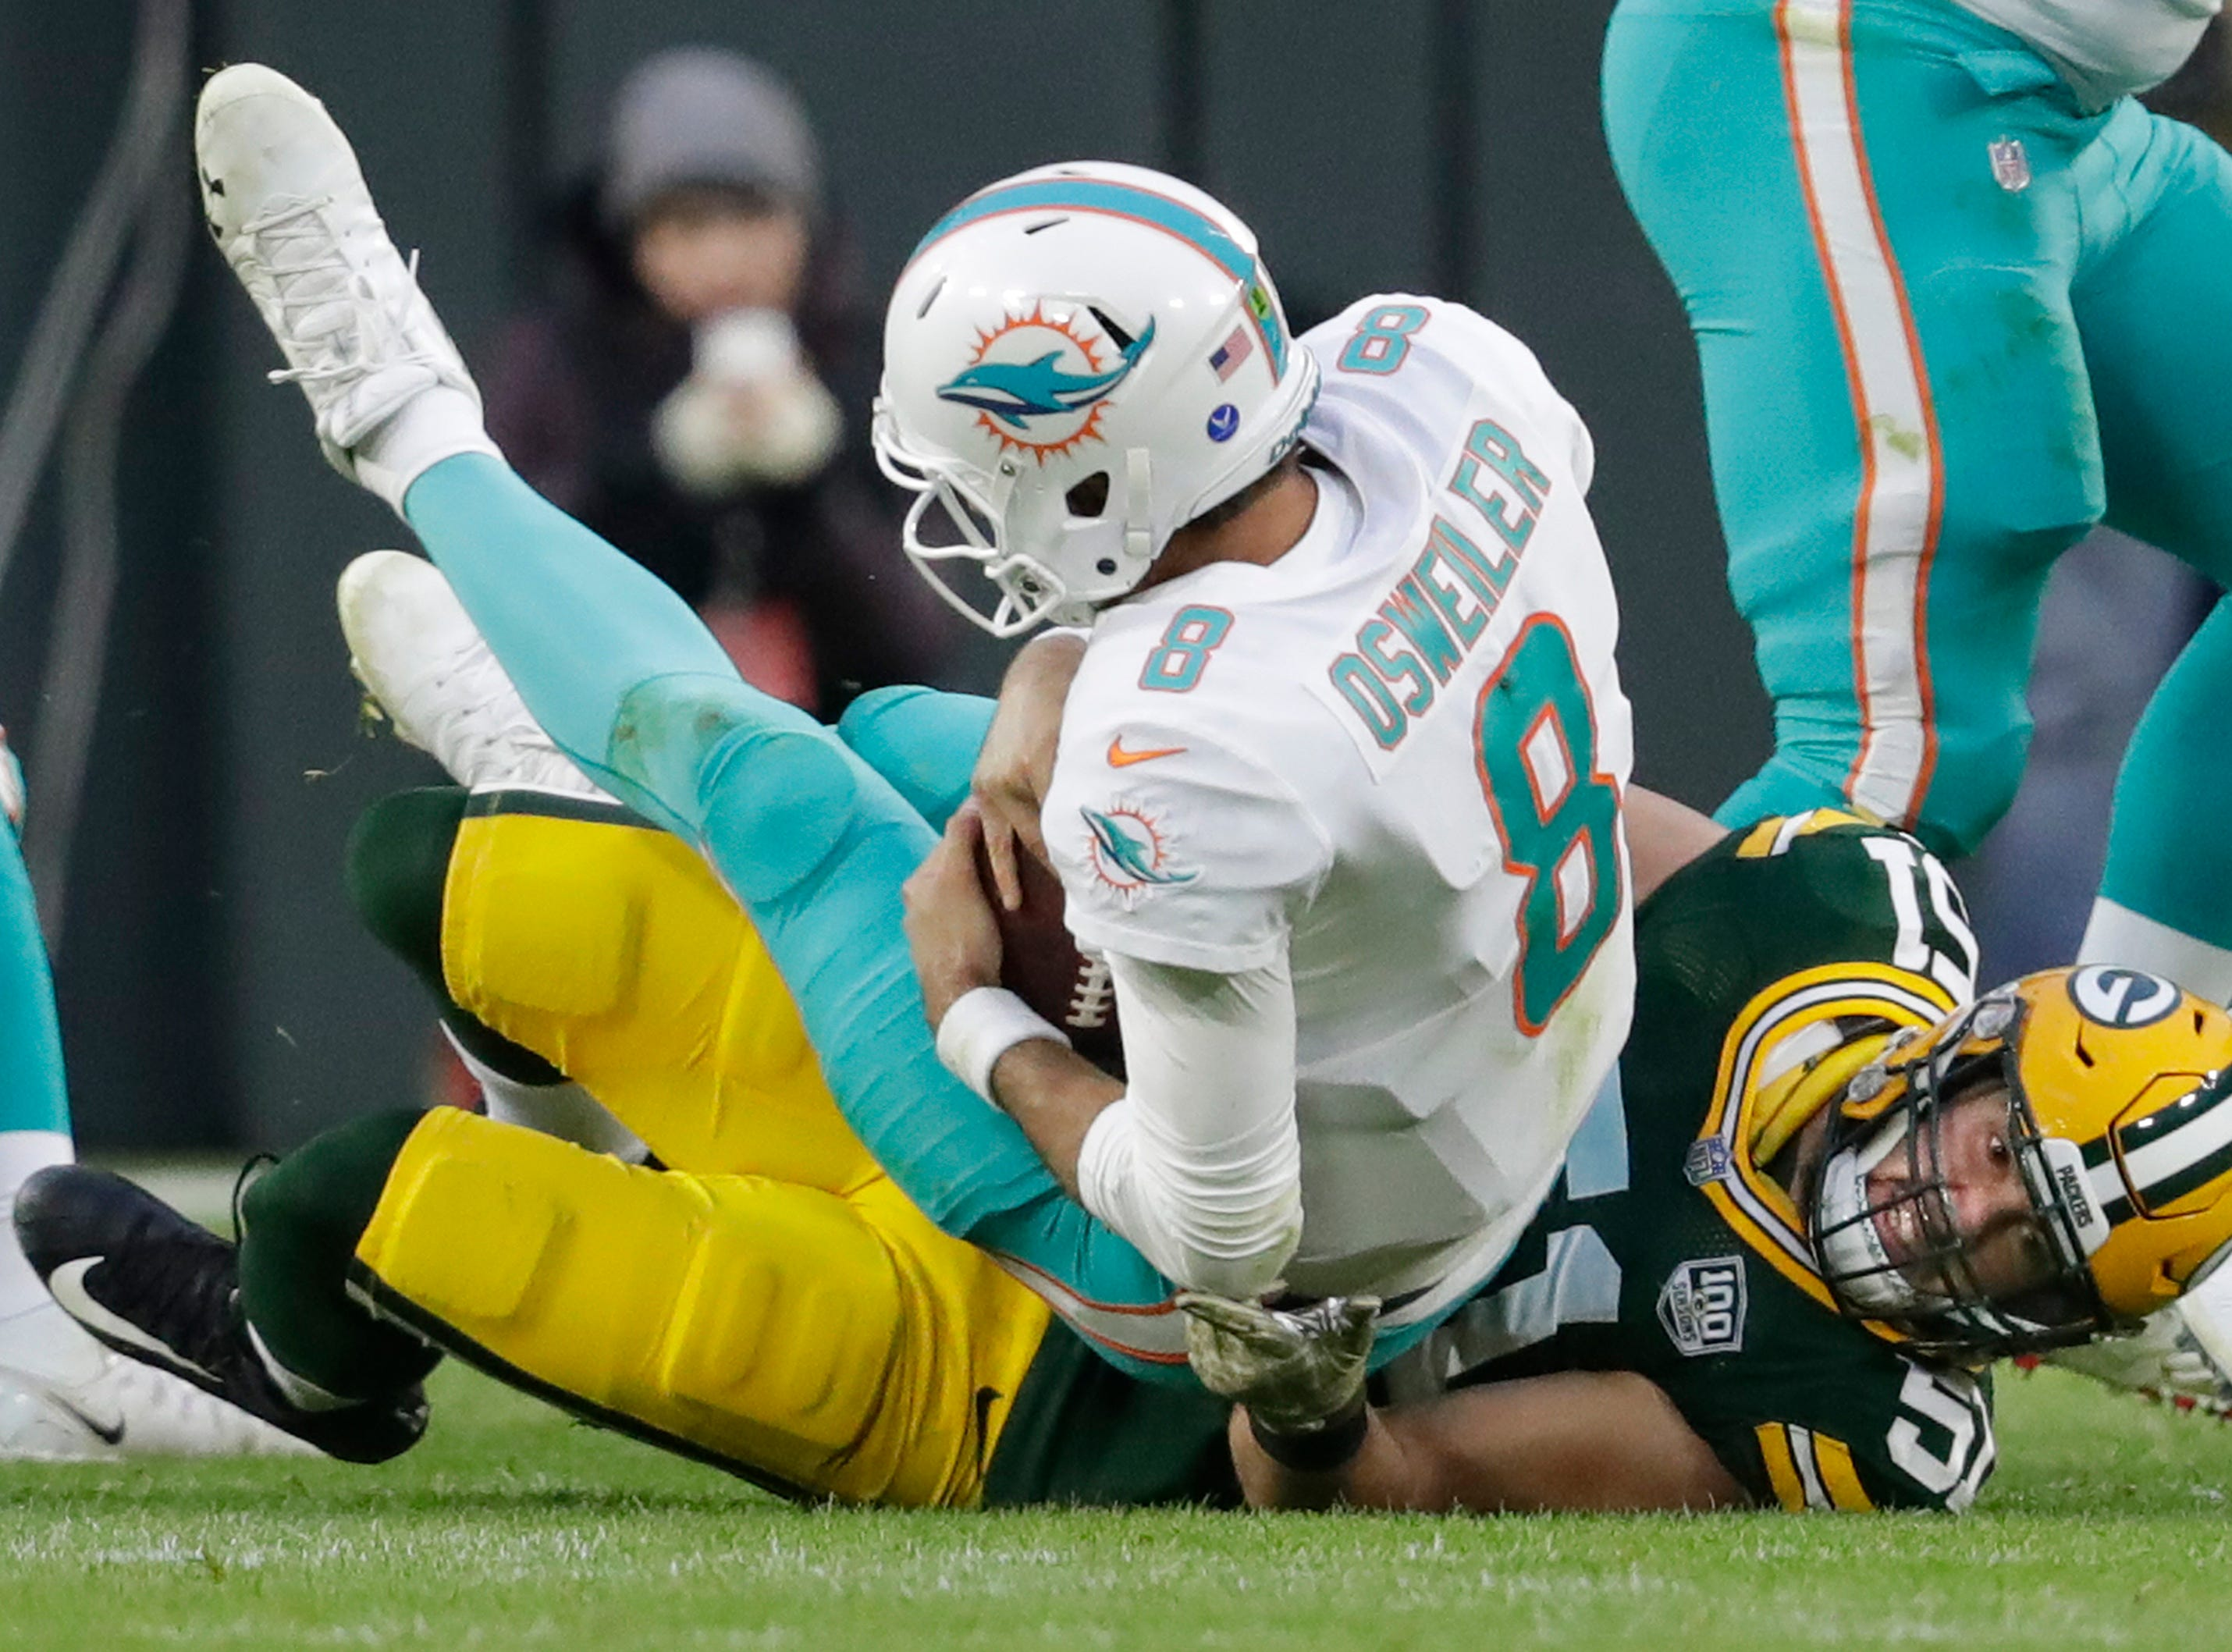 Green Bay Packers linebacker Kyler Fackrell (51) sacks Miami Dolphins quarterback Brock Osweiler (8) in the first quarter Sunday, November 11, 2018, Lambeau Field in Green Bay, Wis. 